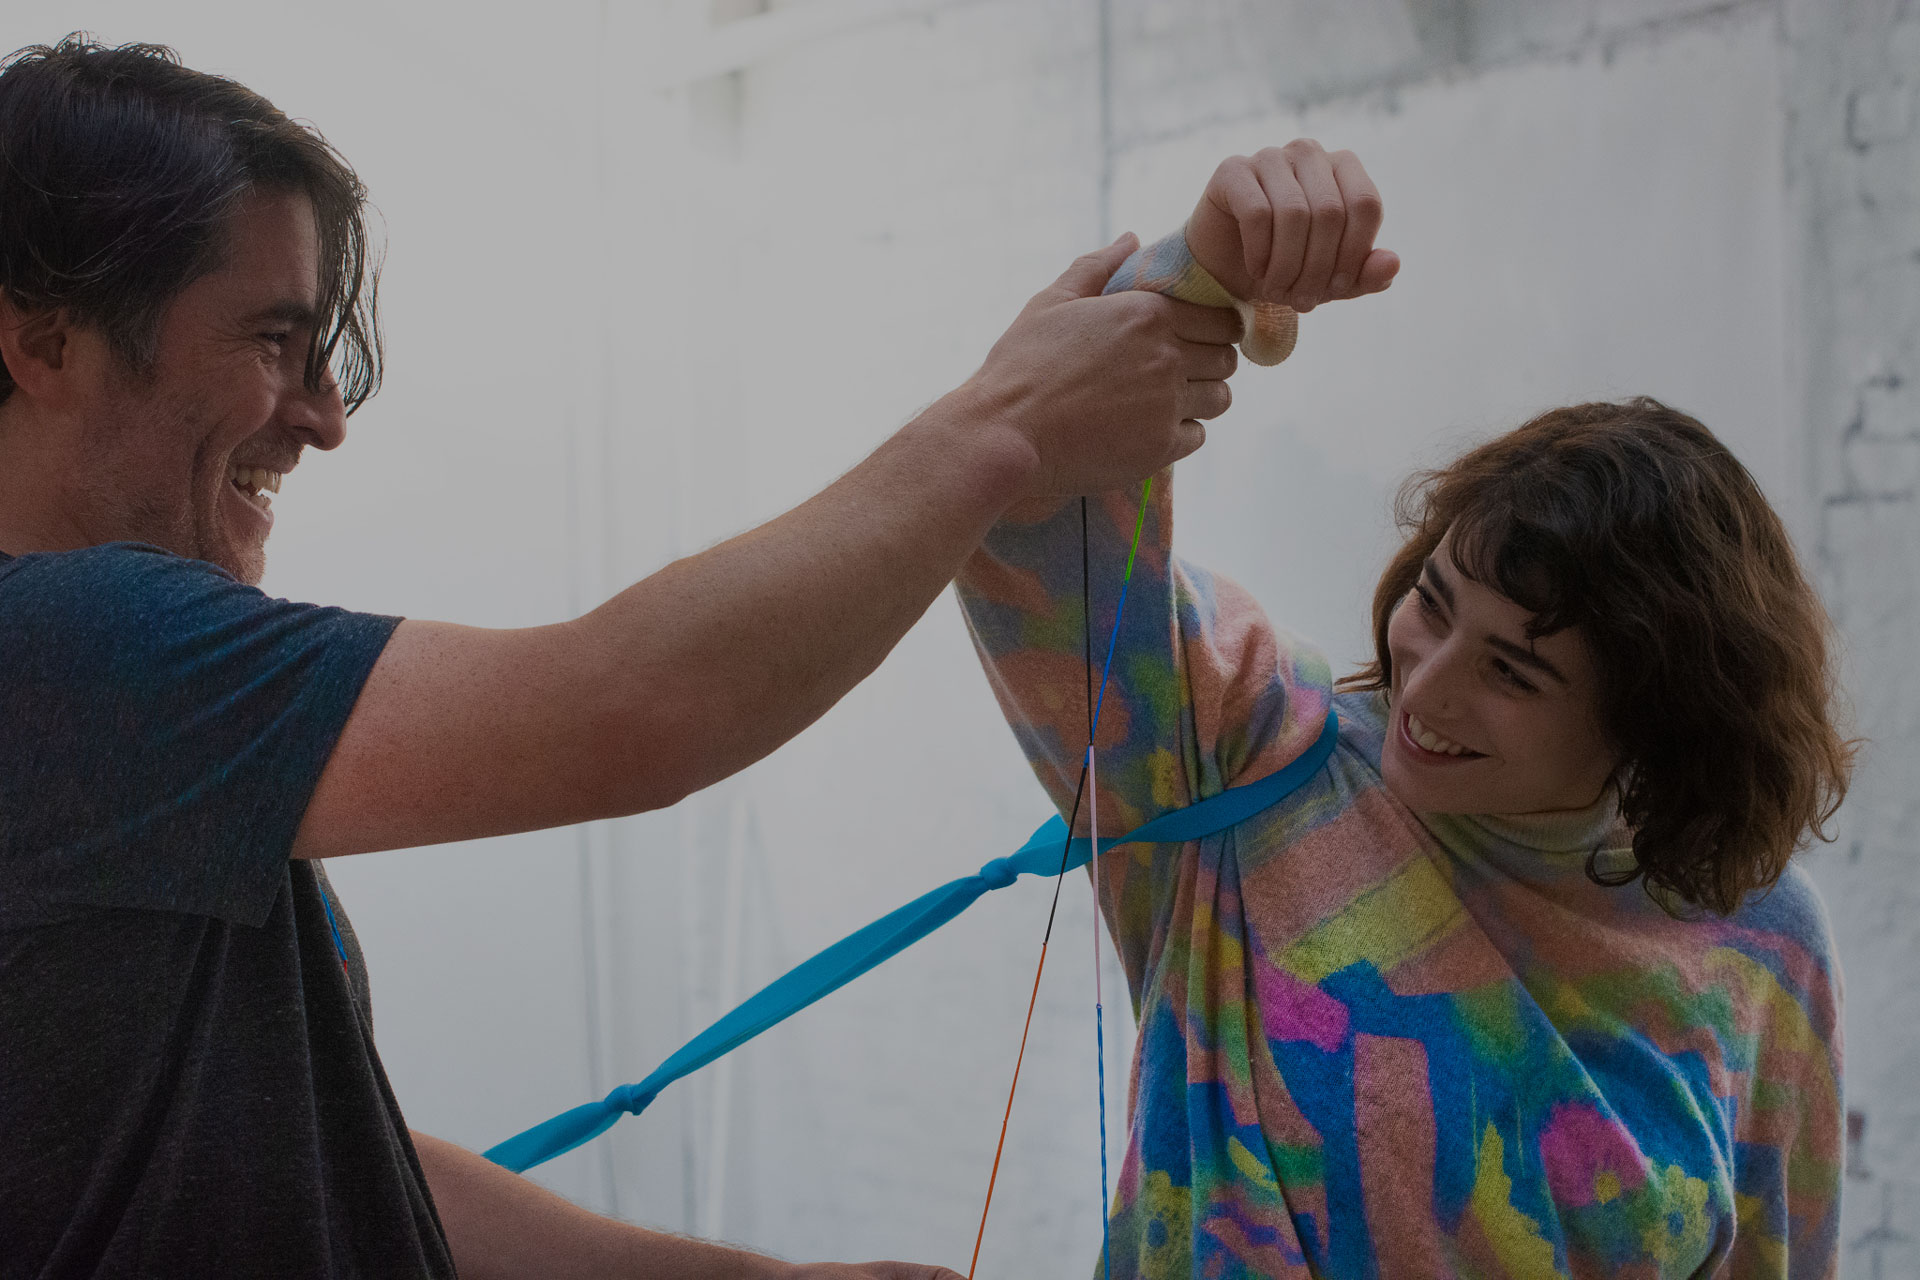 Resistance band training smiling student and instructor